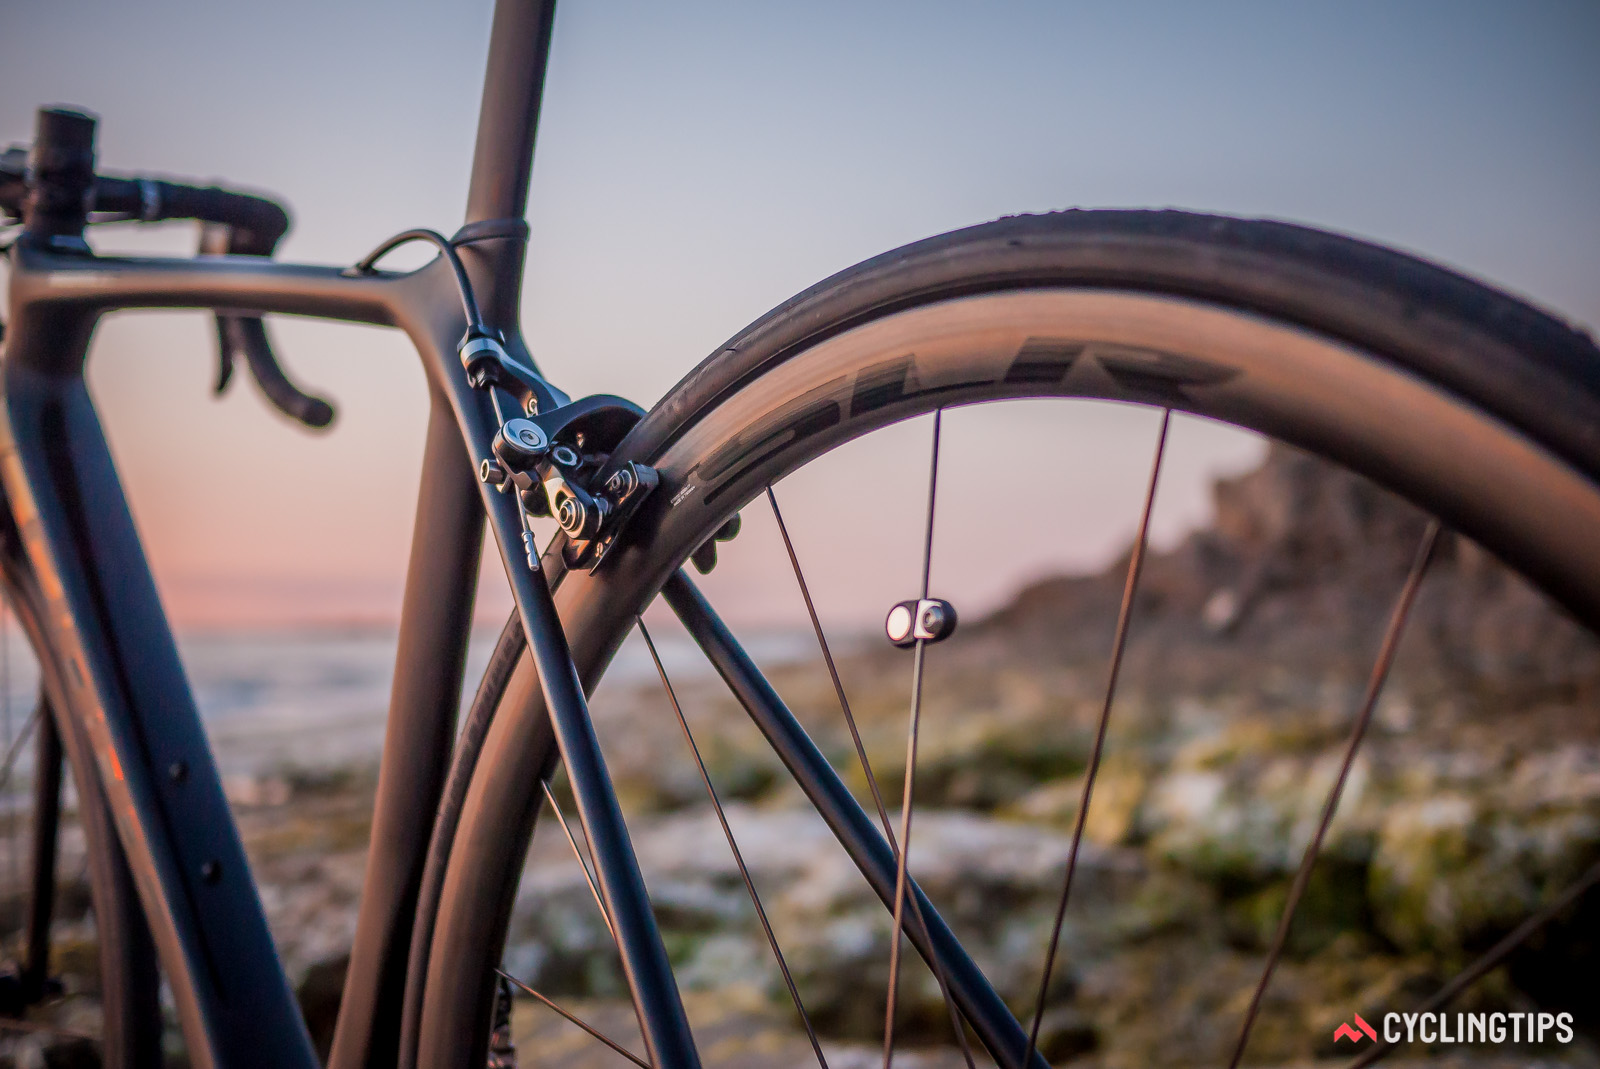 Giant wasn't the first to start supplying carbon wheelsets as a stock option for its complete bikes, but it has managed to bring them to lower pricepoints.